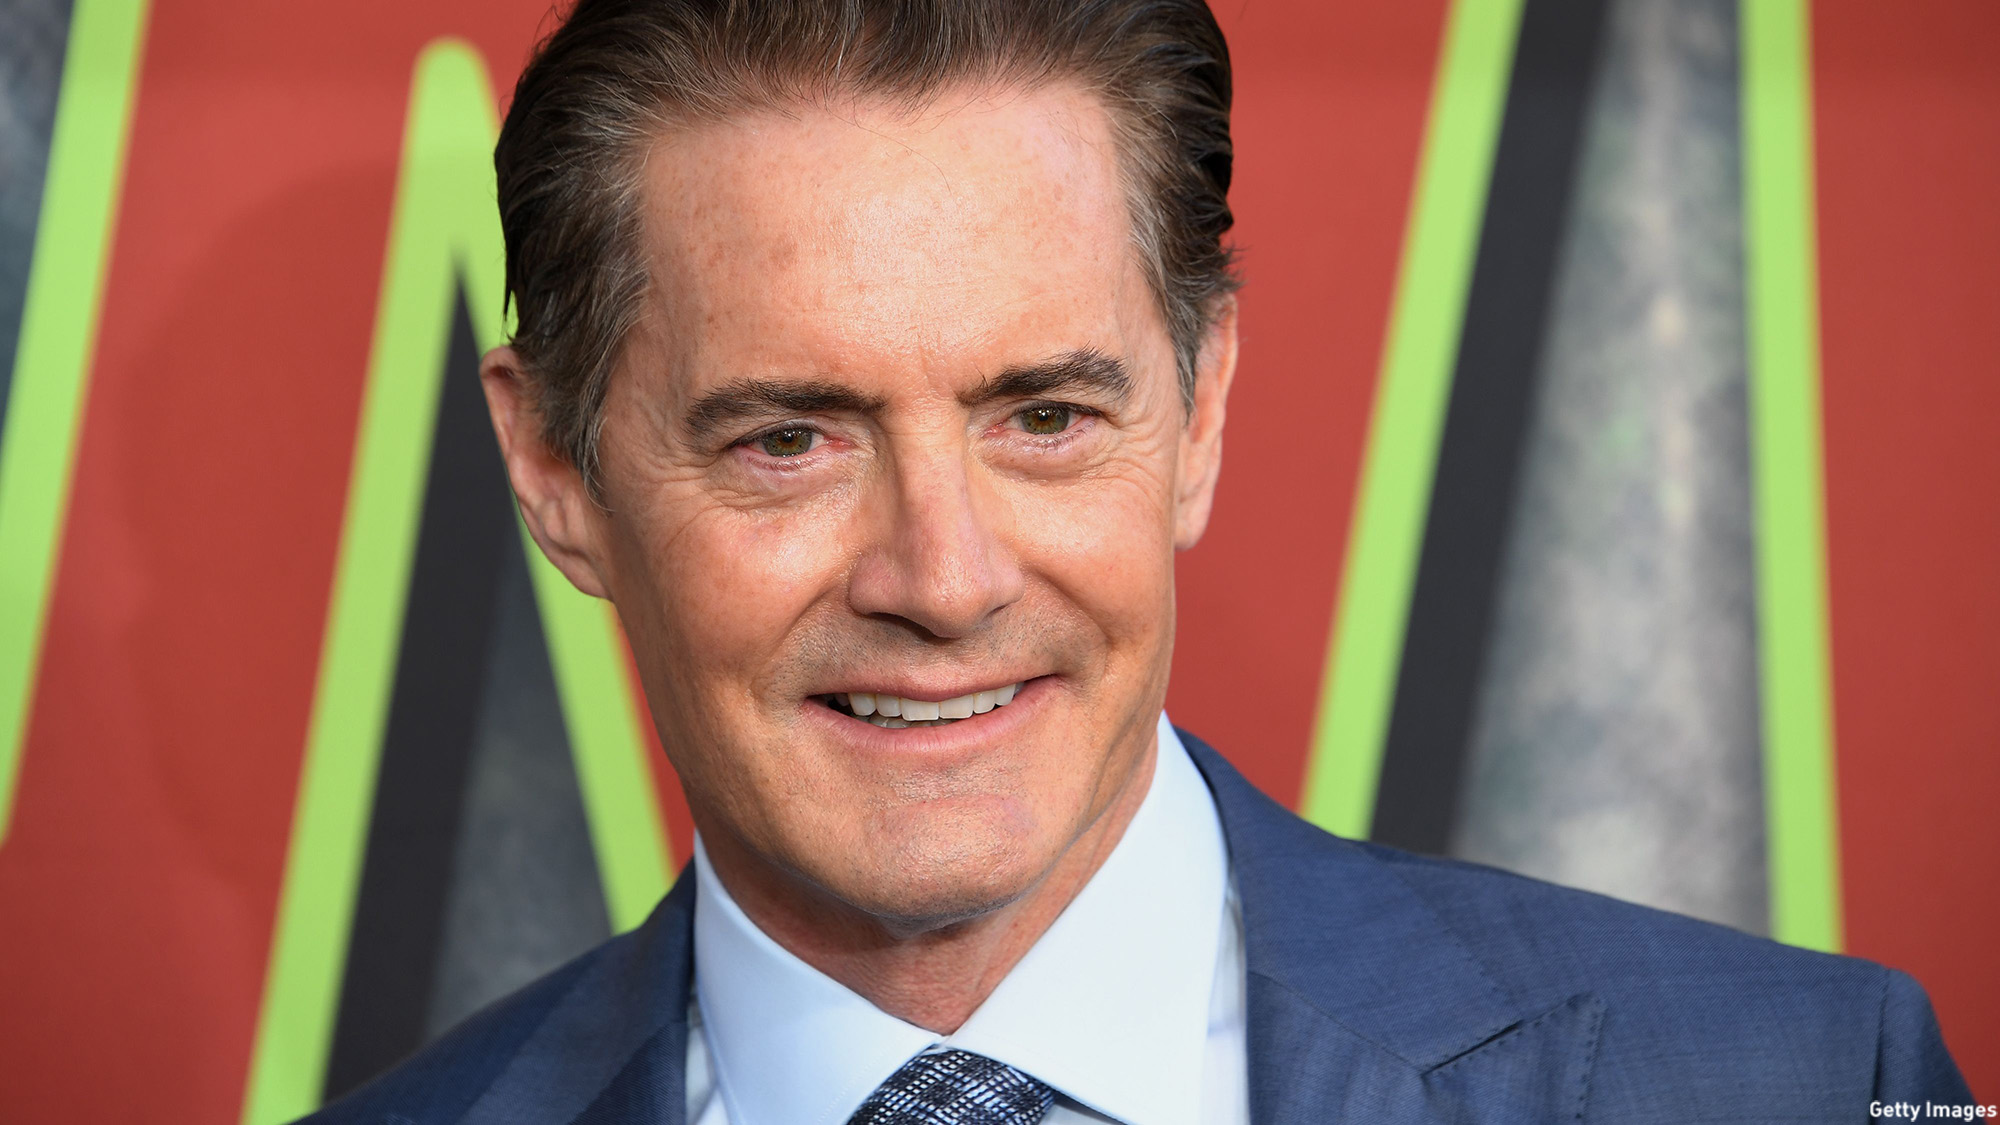 ENTERTAINMENT-US-TELEVISION-TWIN PEAKS